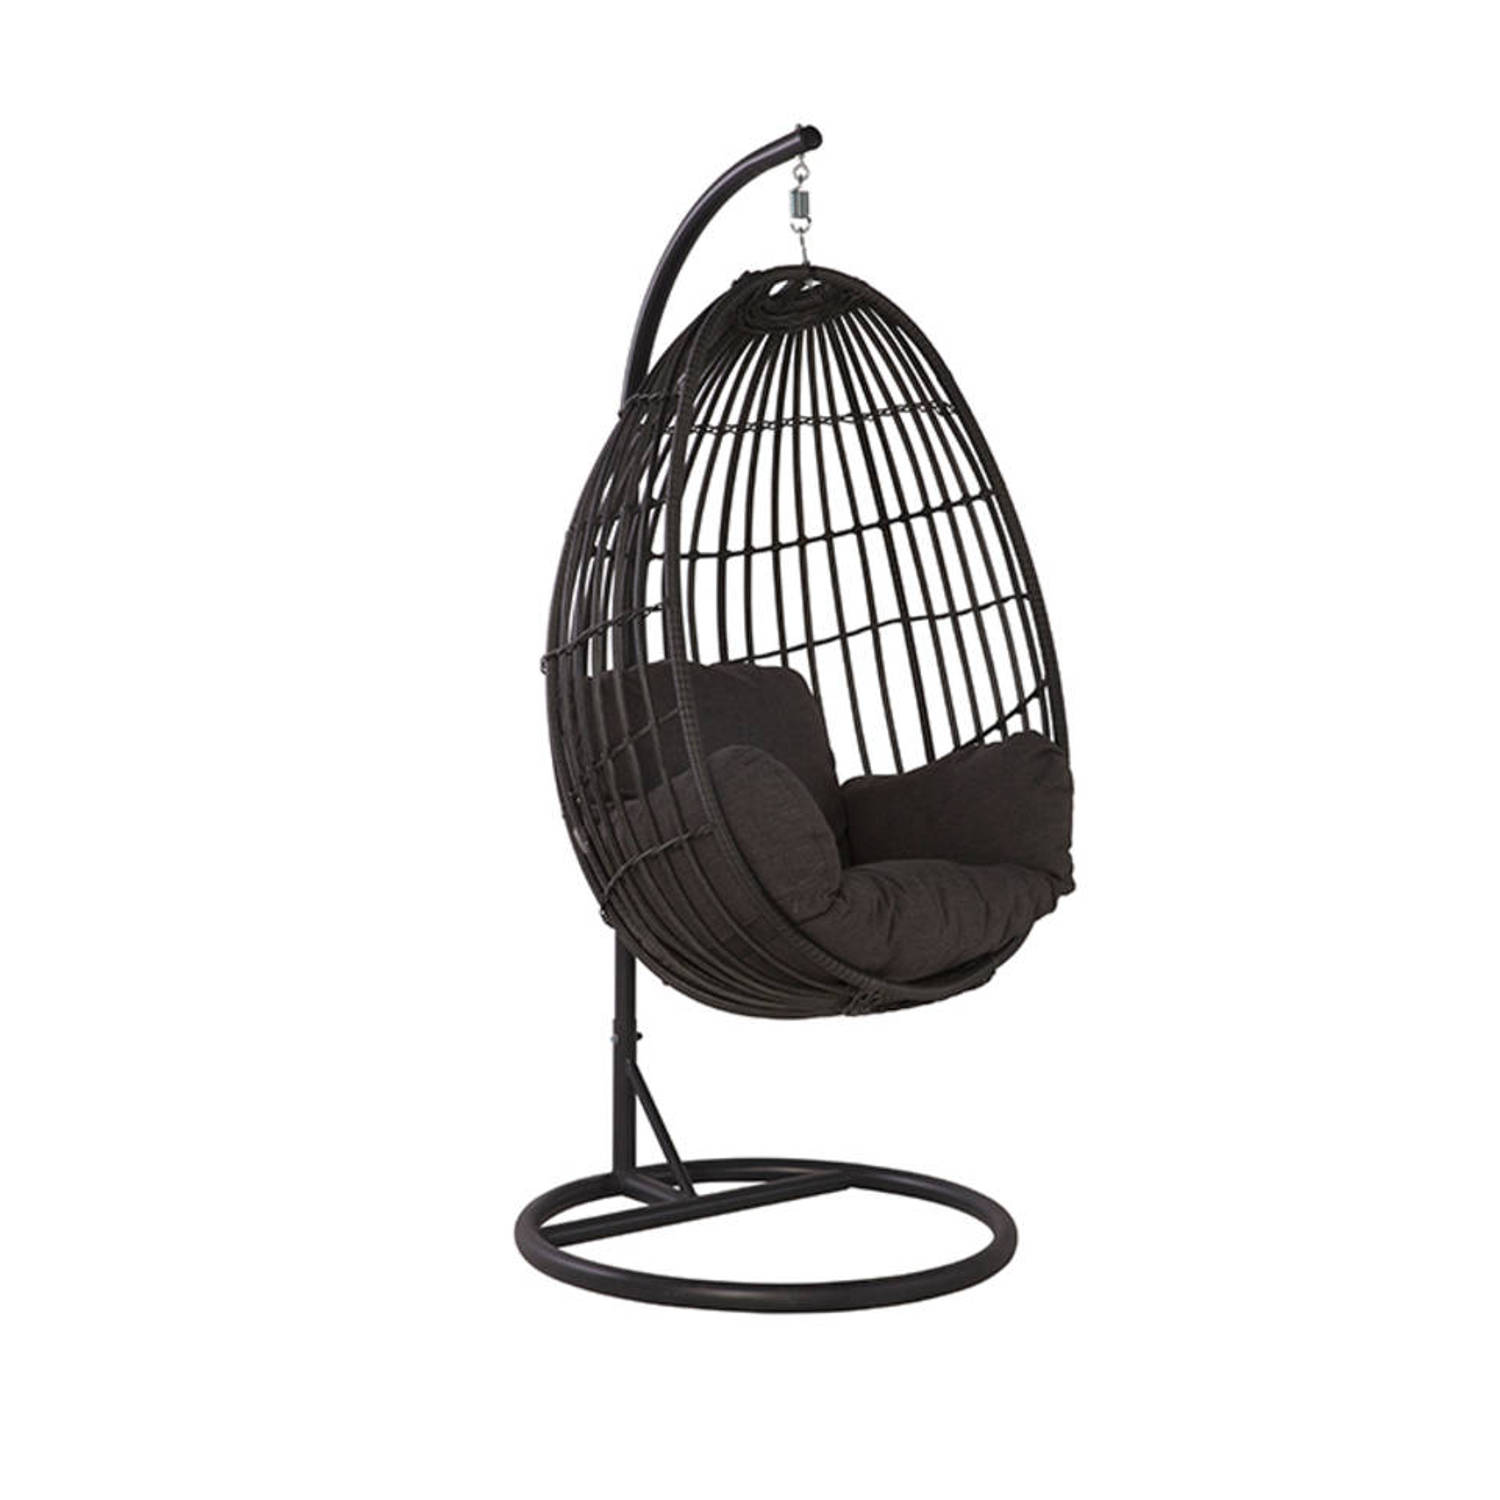 Hangstoel Met Frame.Contadora Hangstoel Egg Royal Grey Blokker